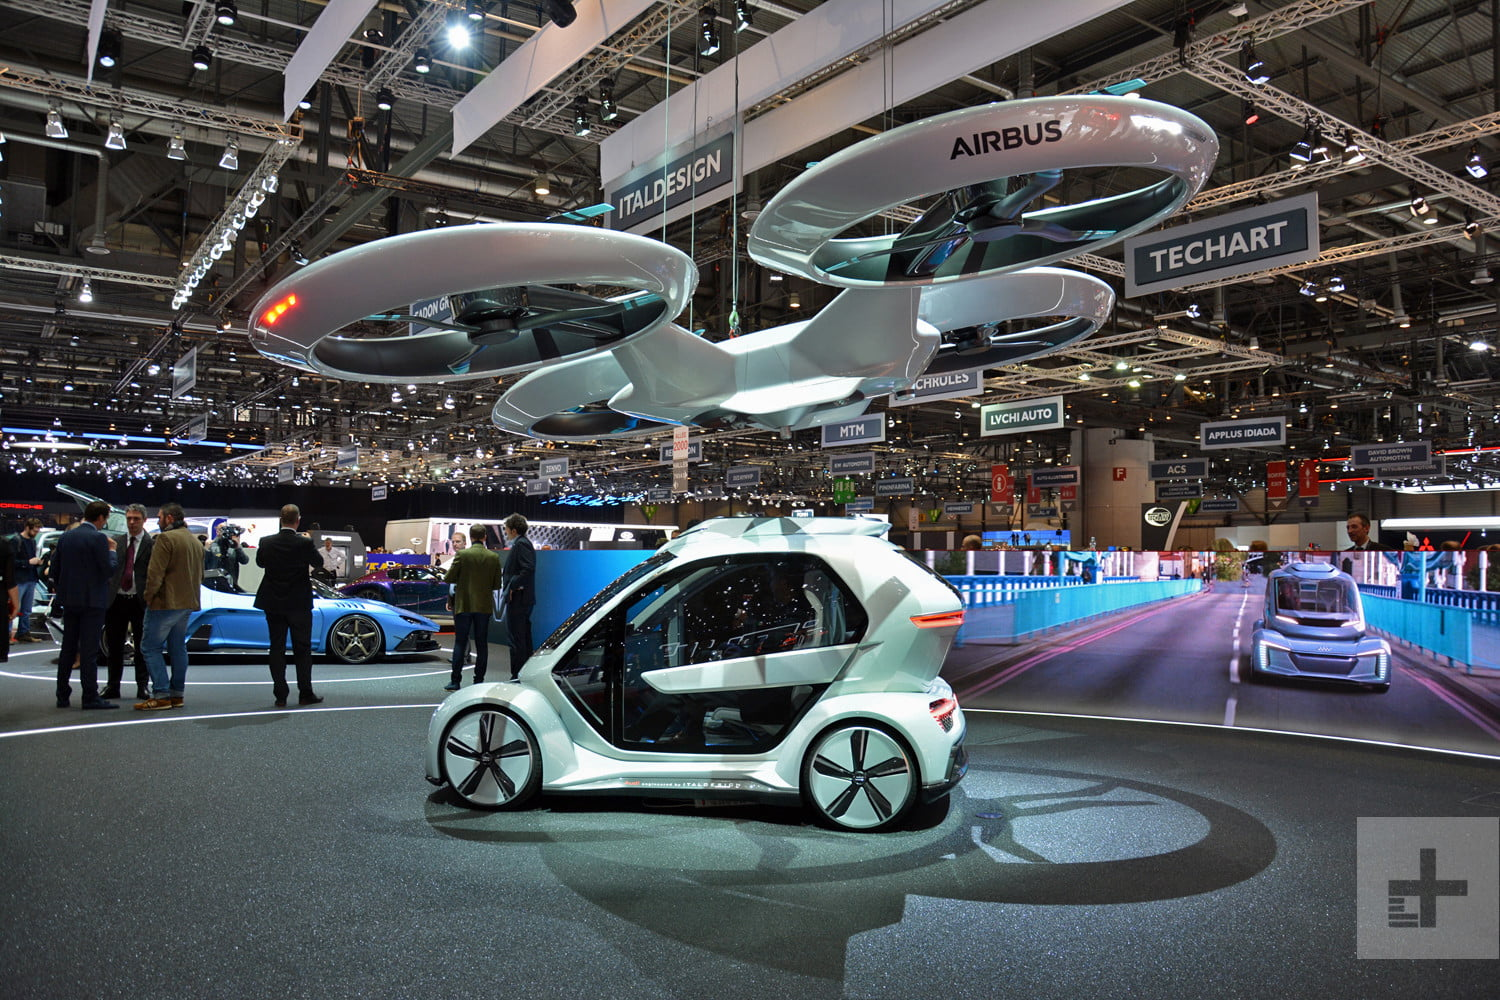 Germany plans to put Airbus and Audi's cool flying taxi concept into the sky